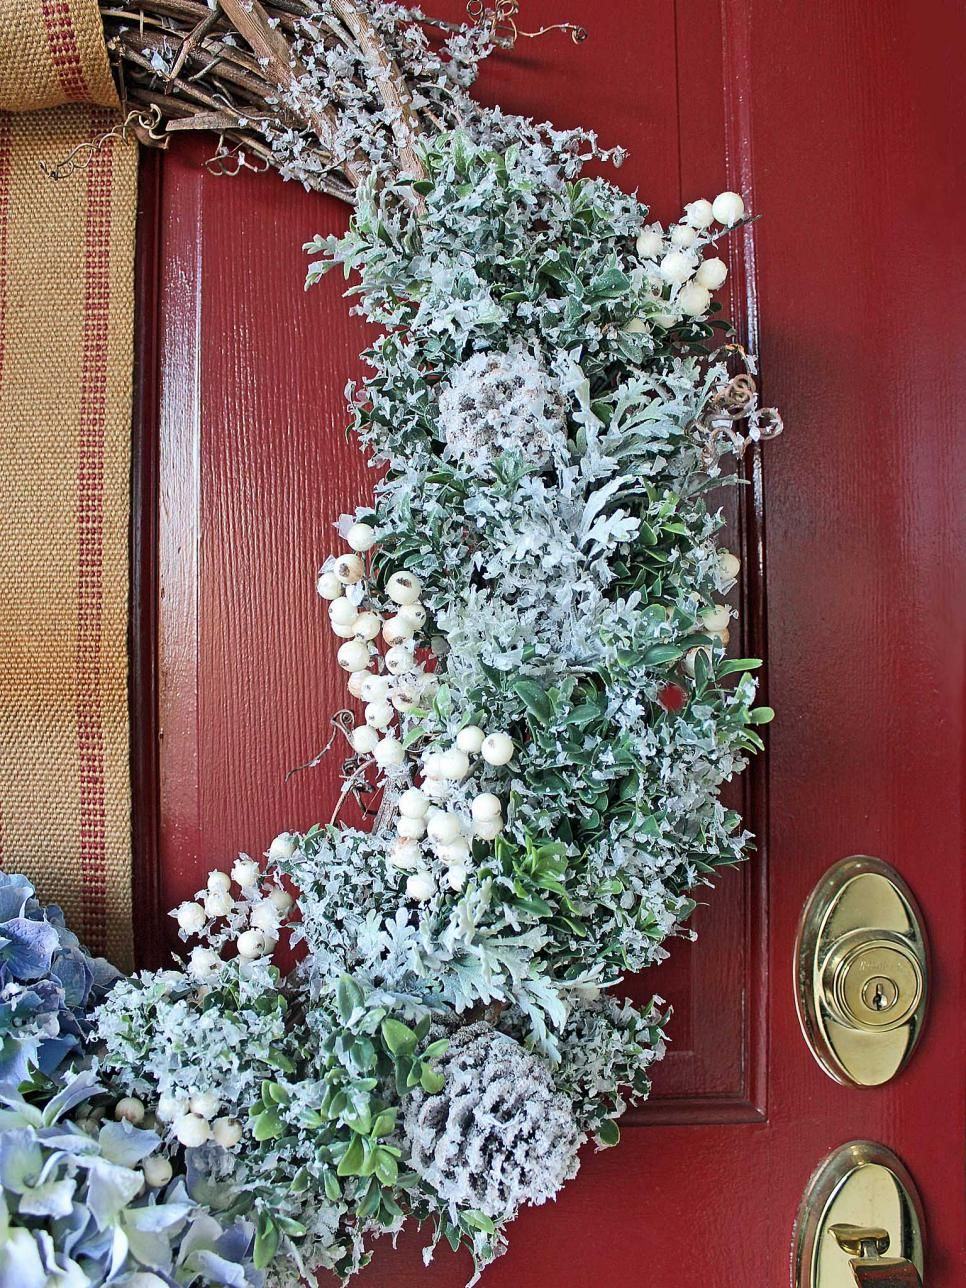 35 crafty outdoor holiday decorating ideas front door wreaths